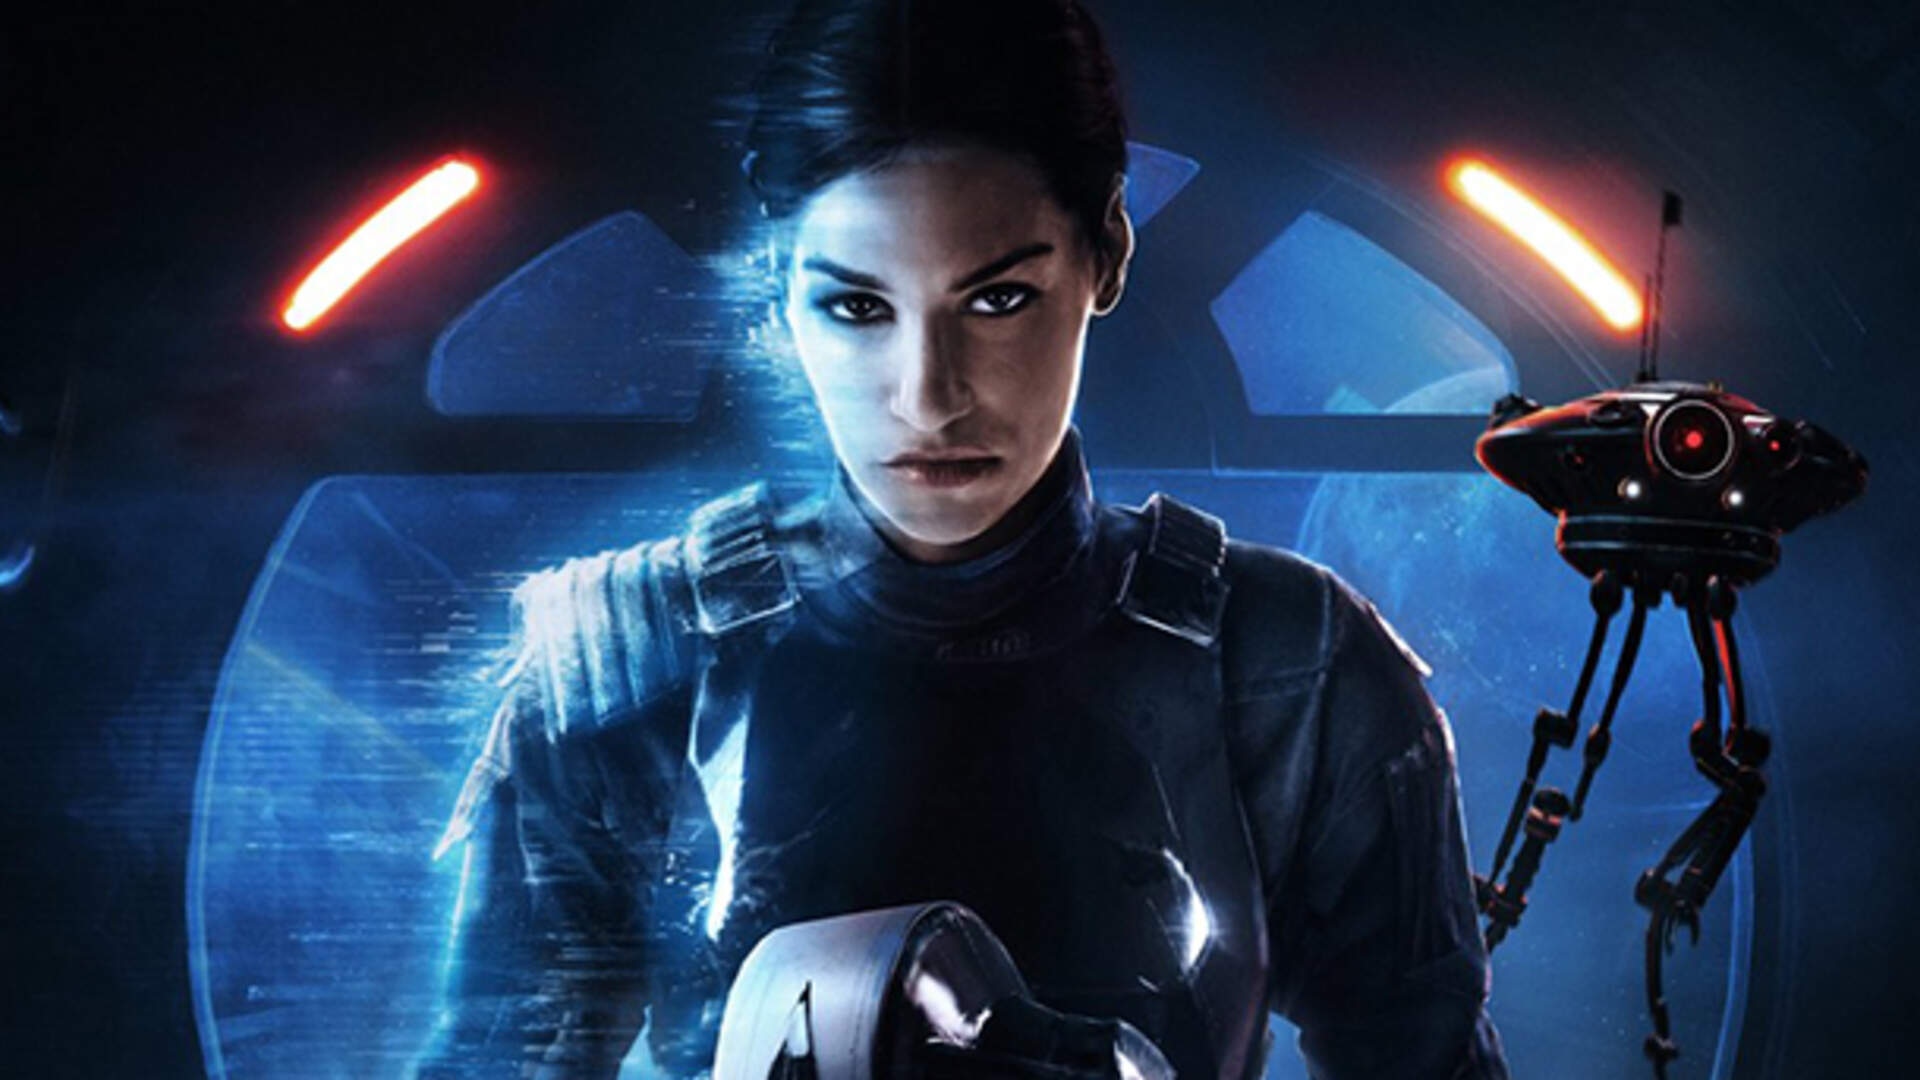 Star Wars Battlefront 2's Janina Gavankar on Diversity, the Voice Actor Strike, and the State of Twitter in 2017